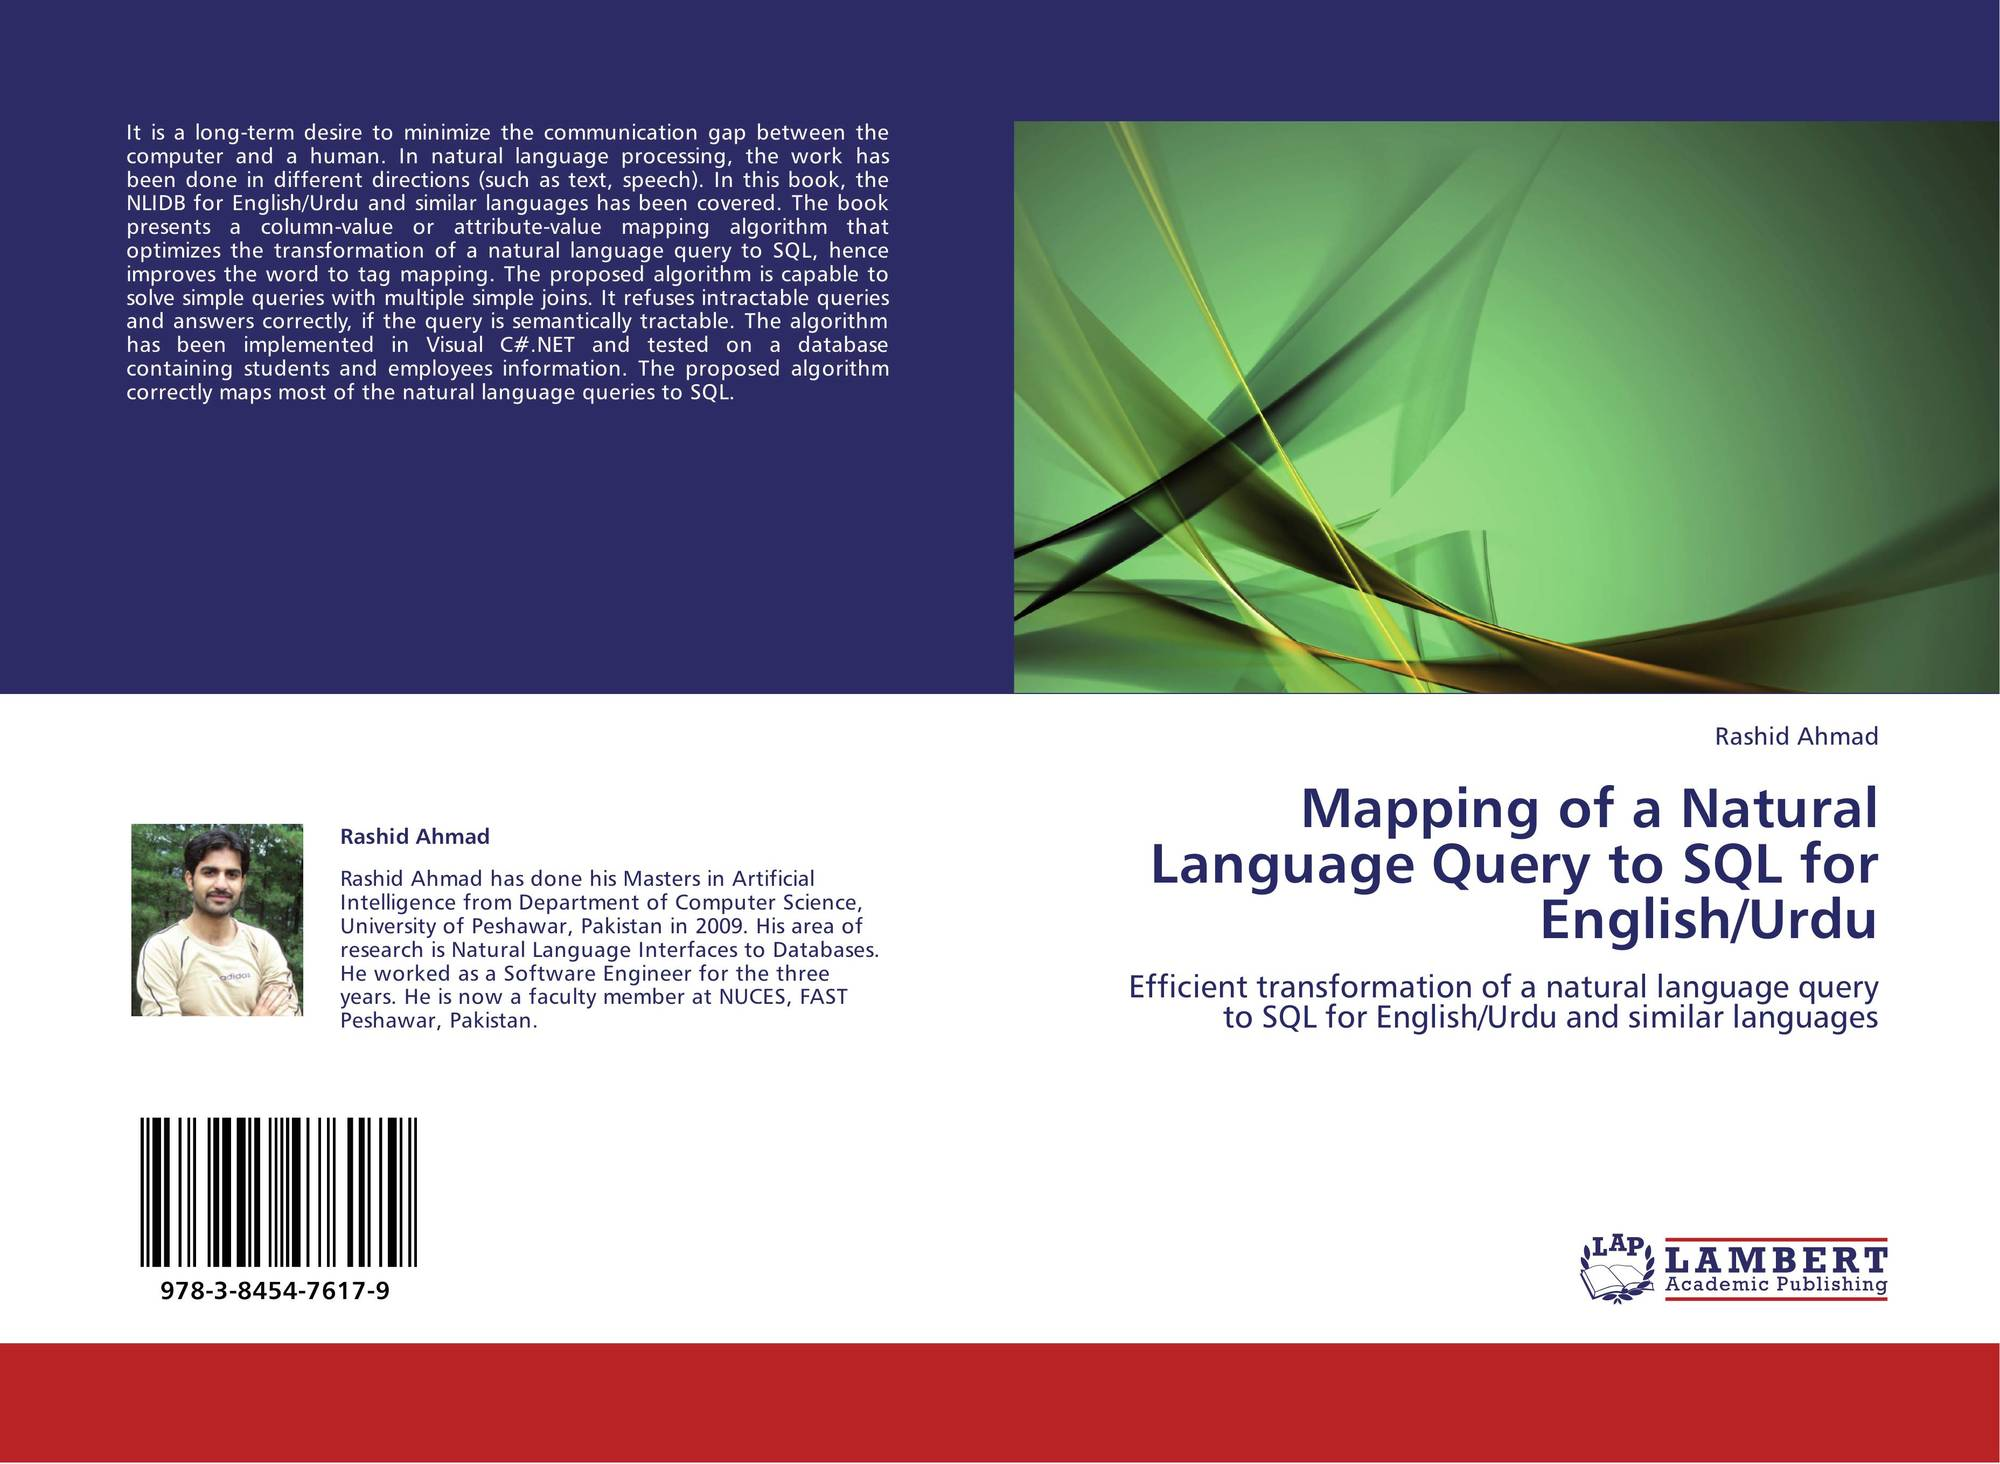 Mapping of a Natural Language Query to SQL for English/Urdu